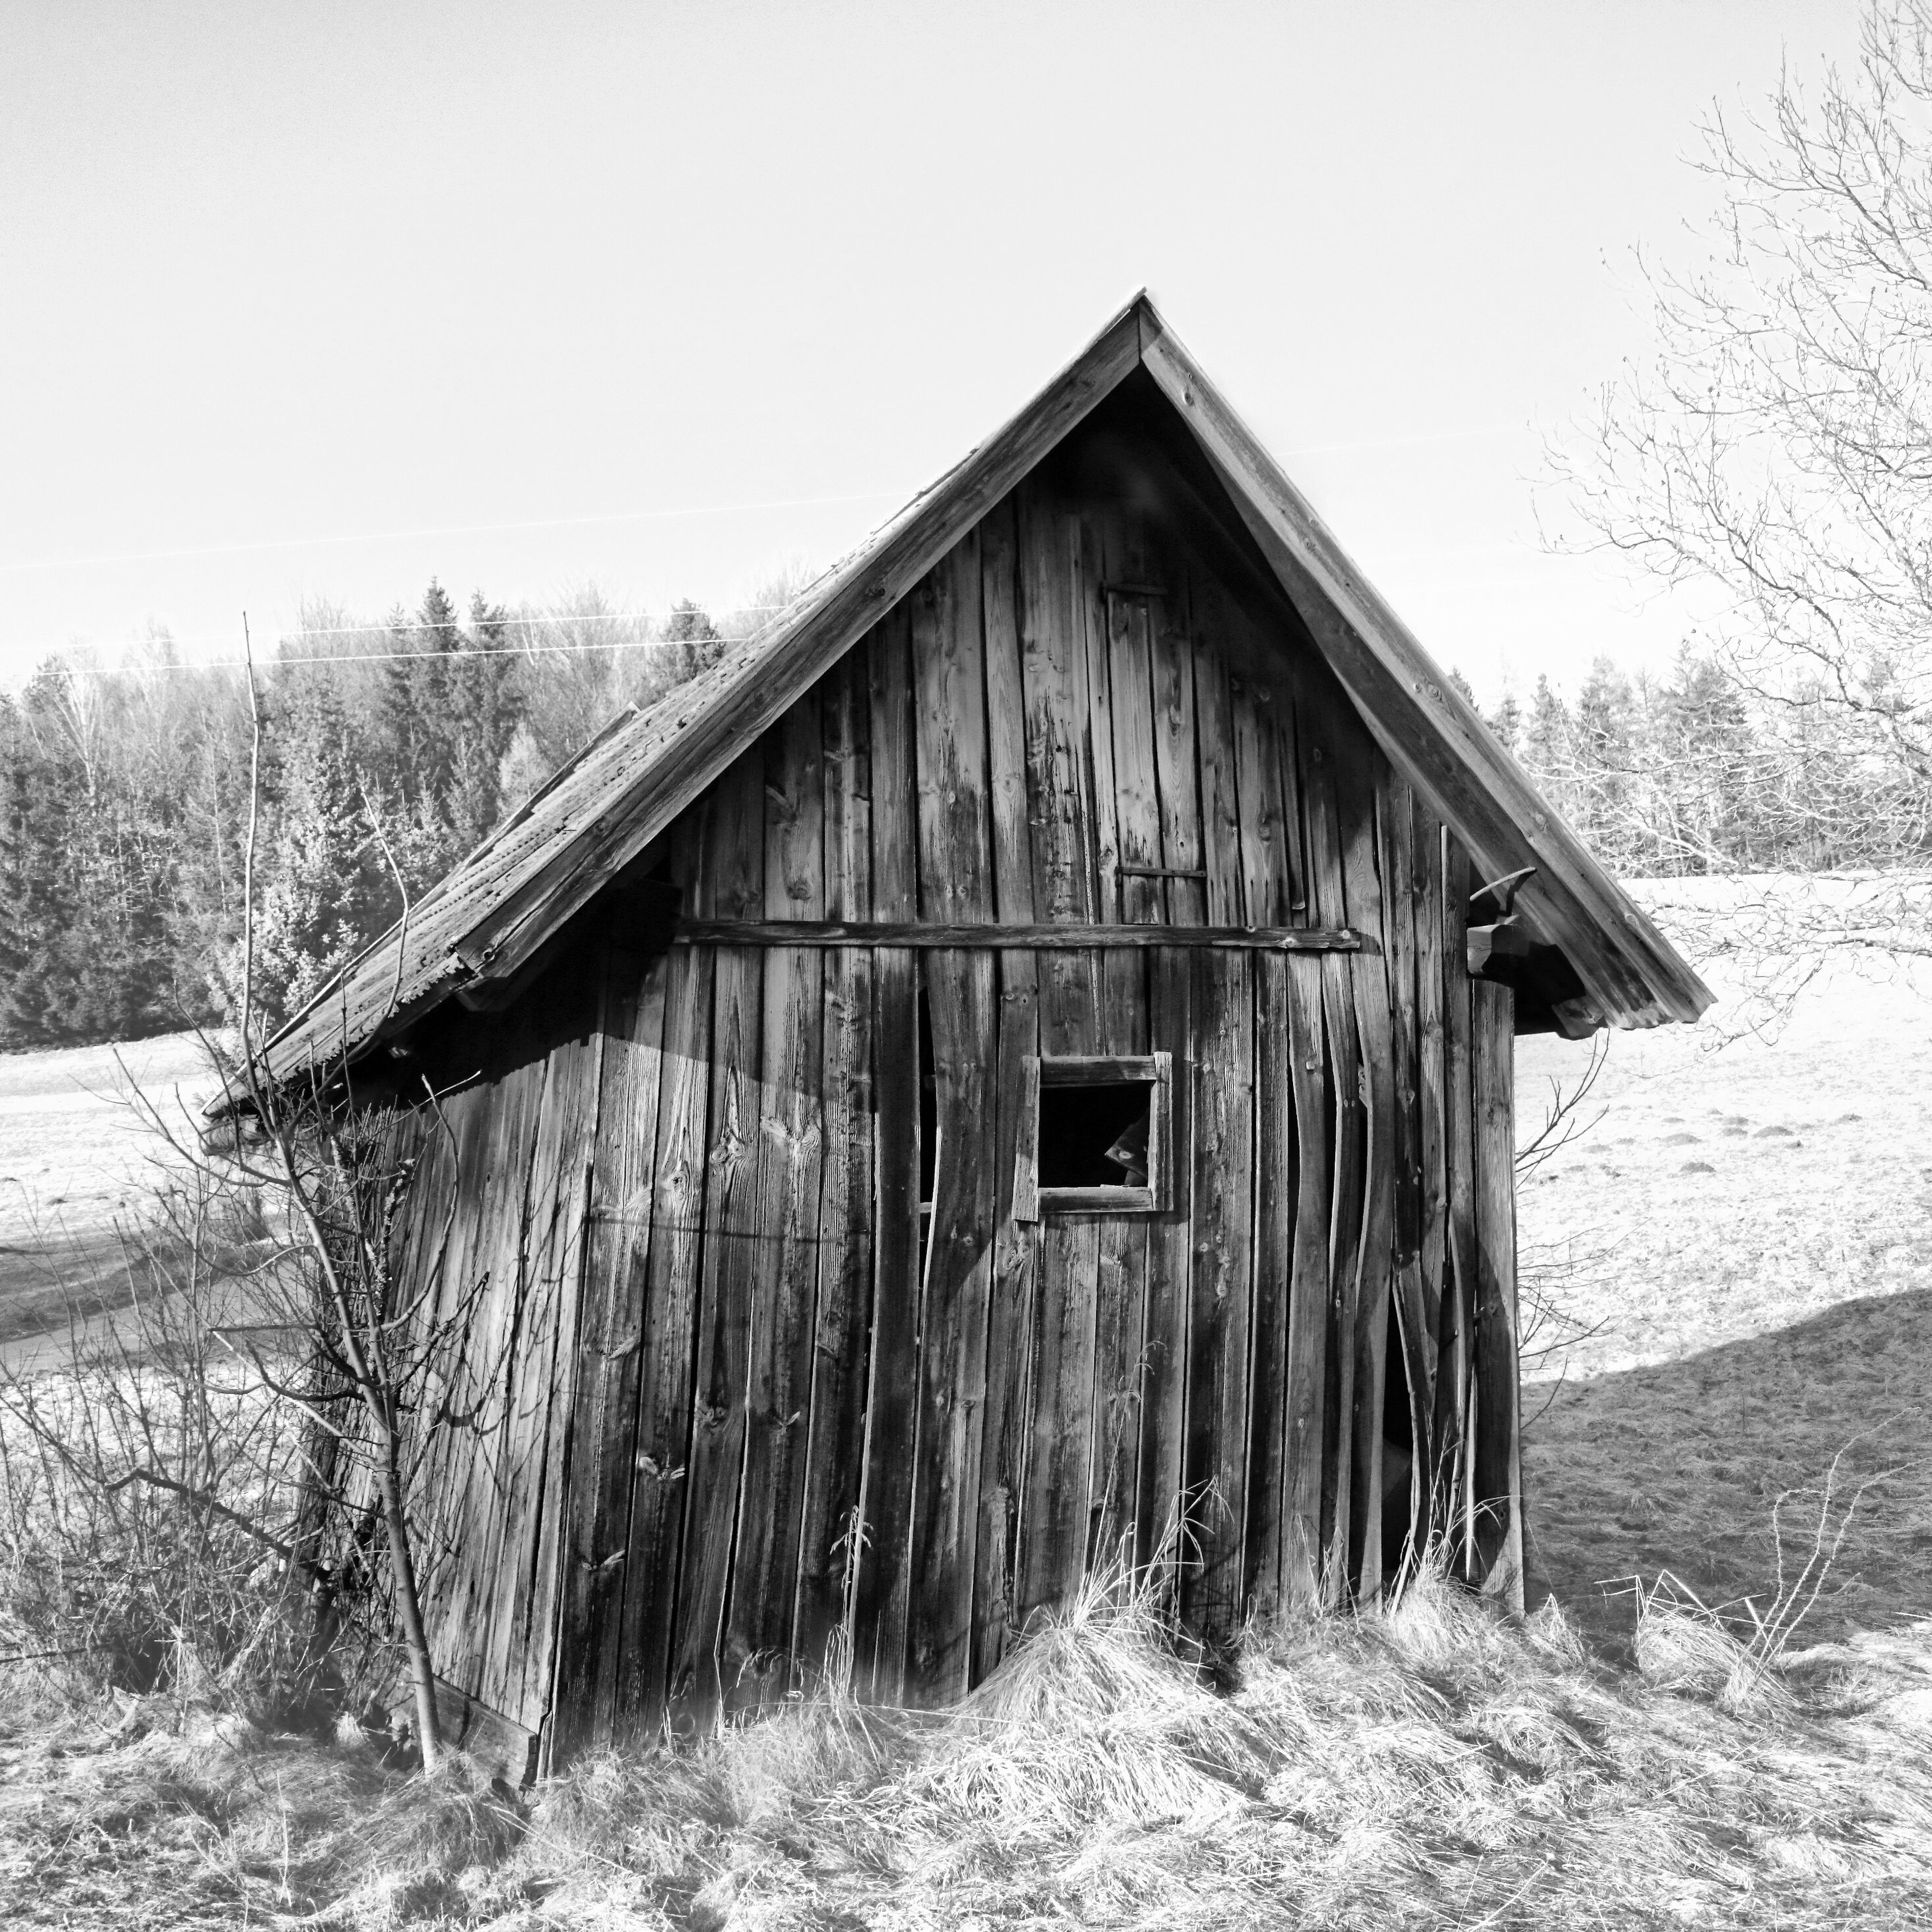 built structure, architecture, abandoned, house, building exterior, obsolete, old, wood - material, damaged, run-down, clear sky, tree, deterioration, field, weathered, hut, sky, day, barn, wood